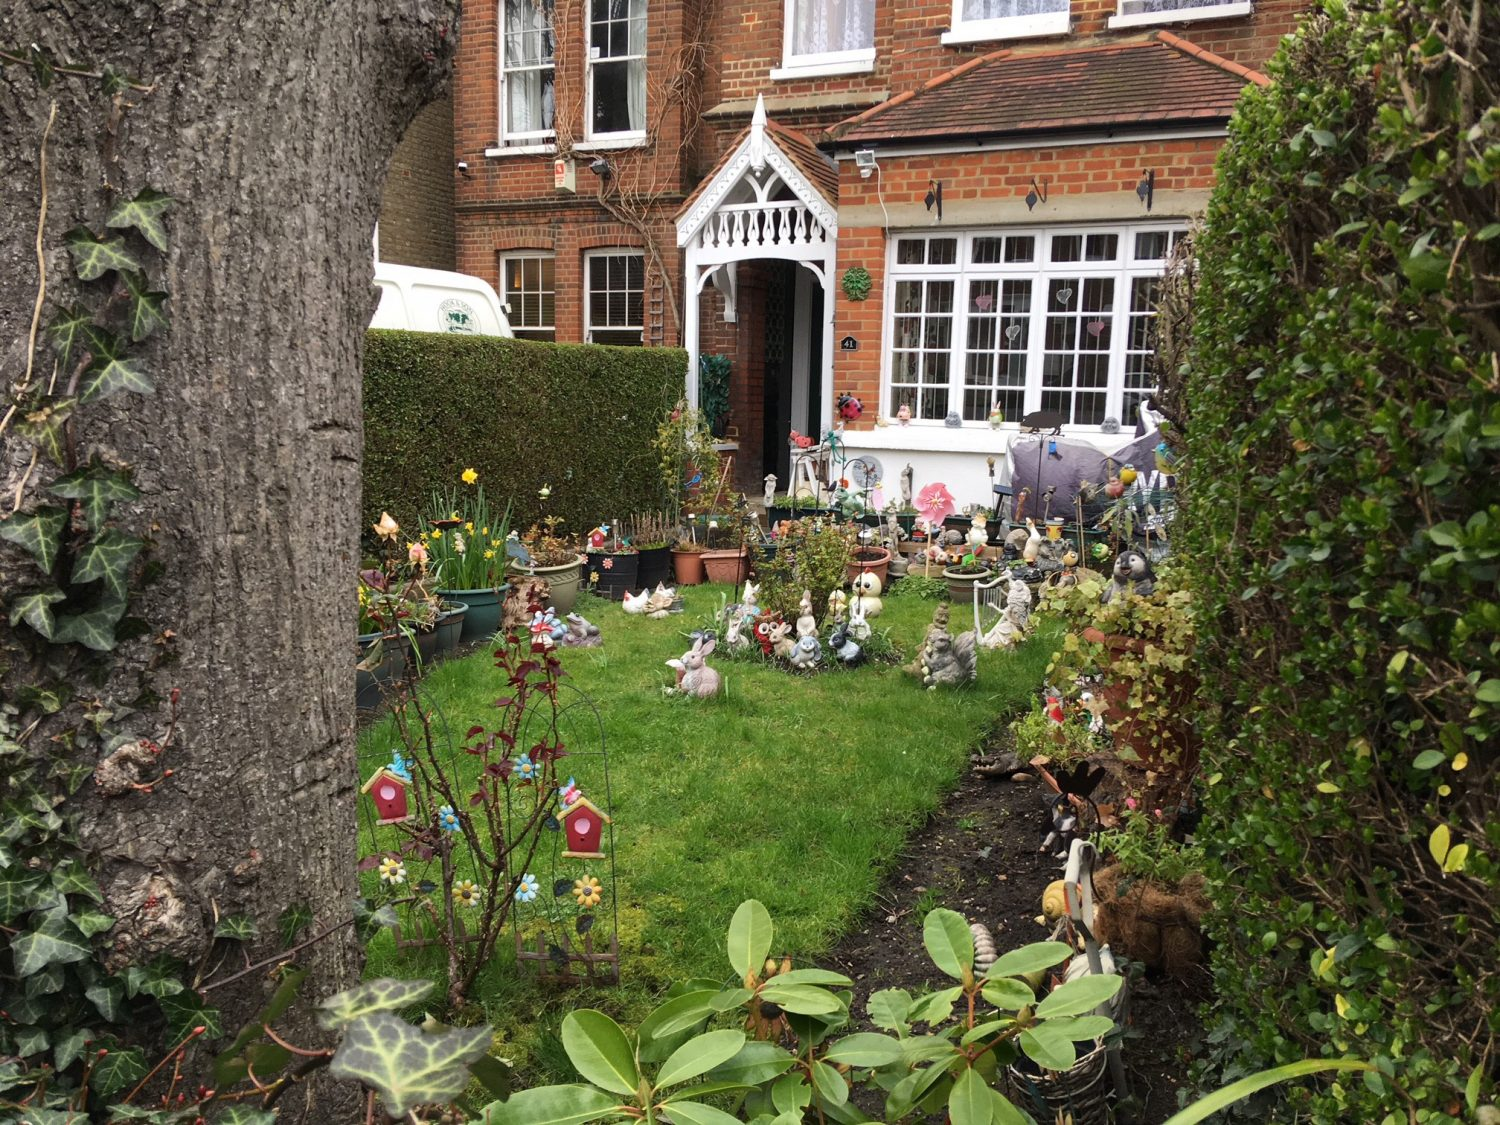 A characterful front garden seen on a trip to Putney